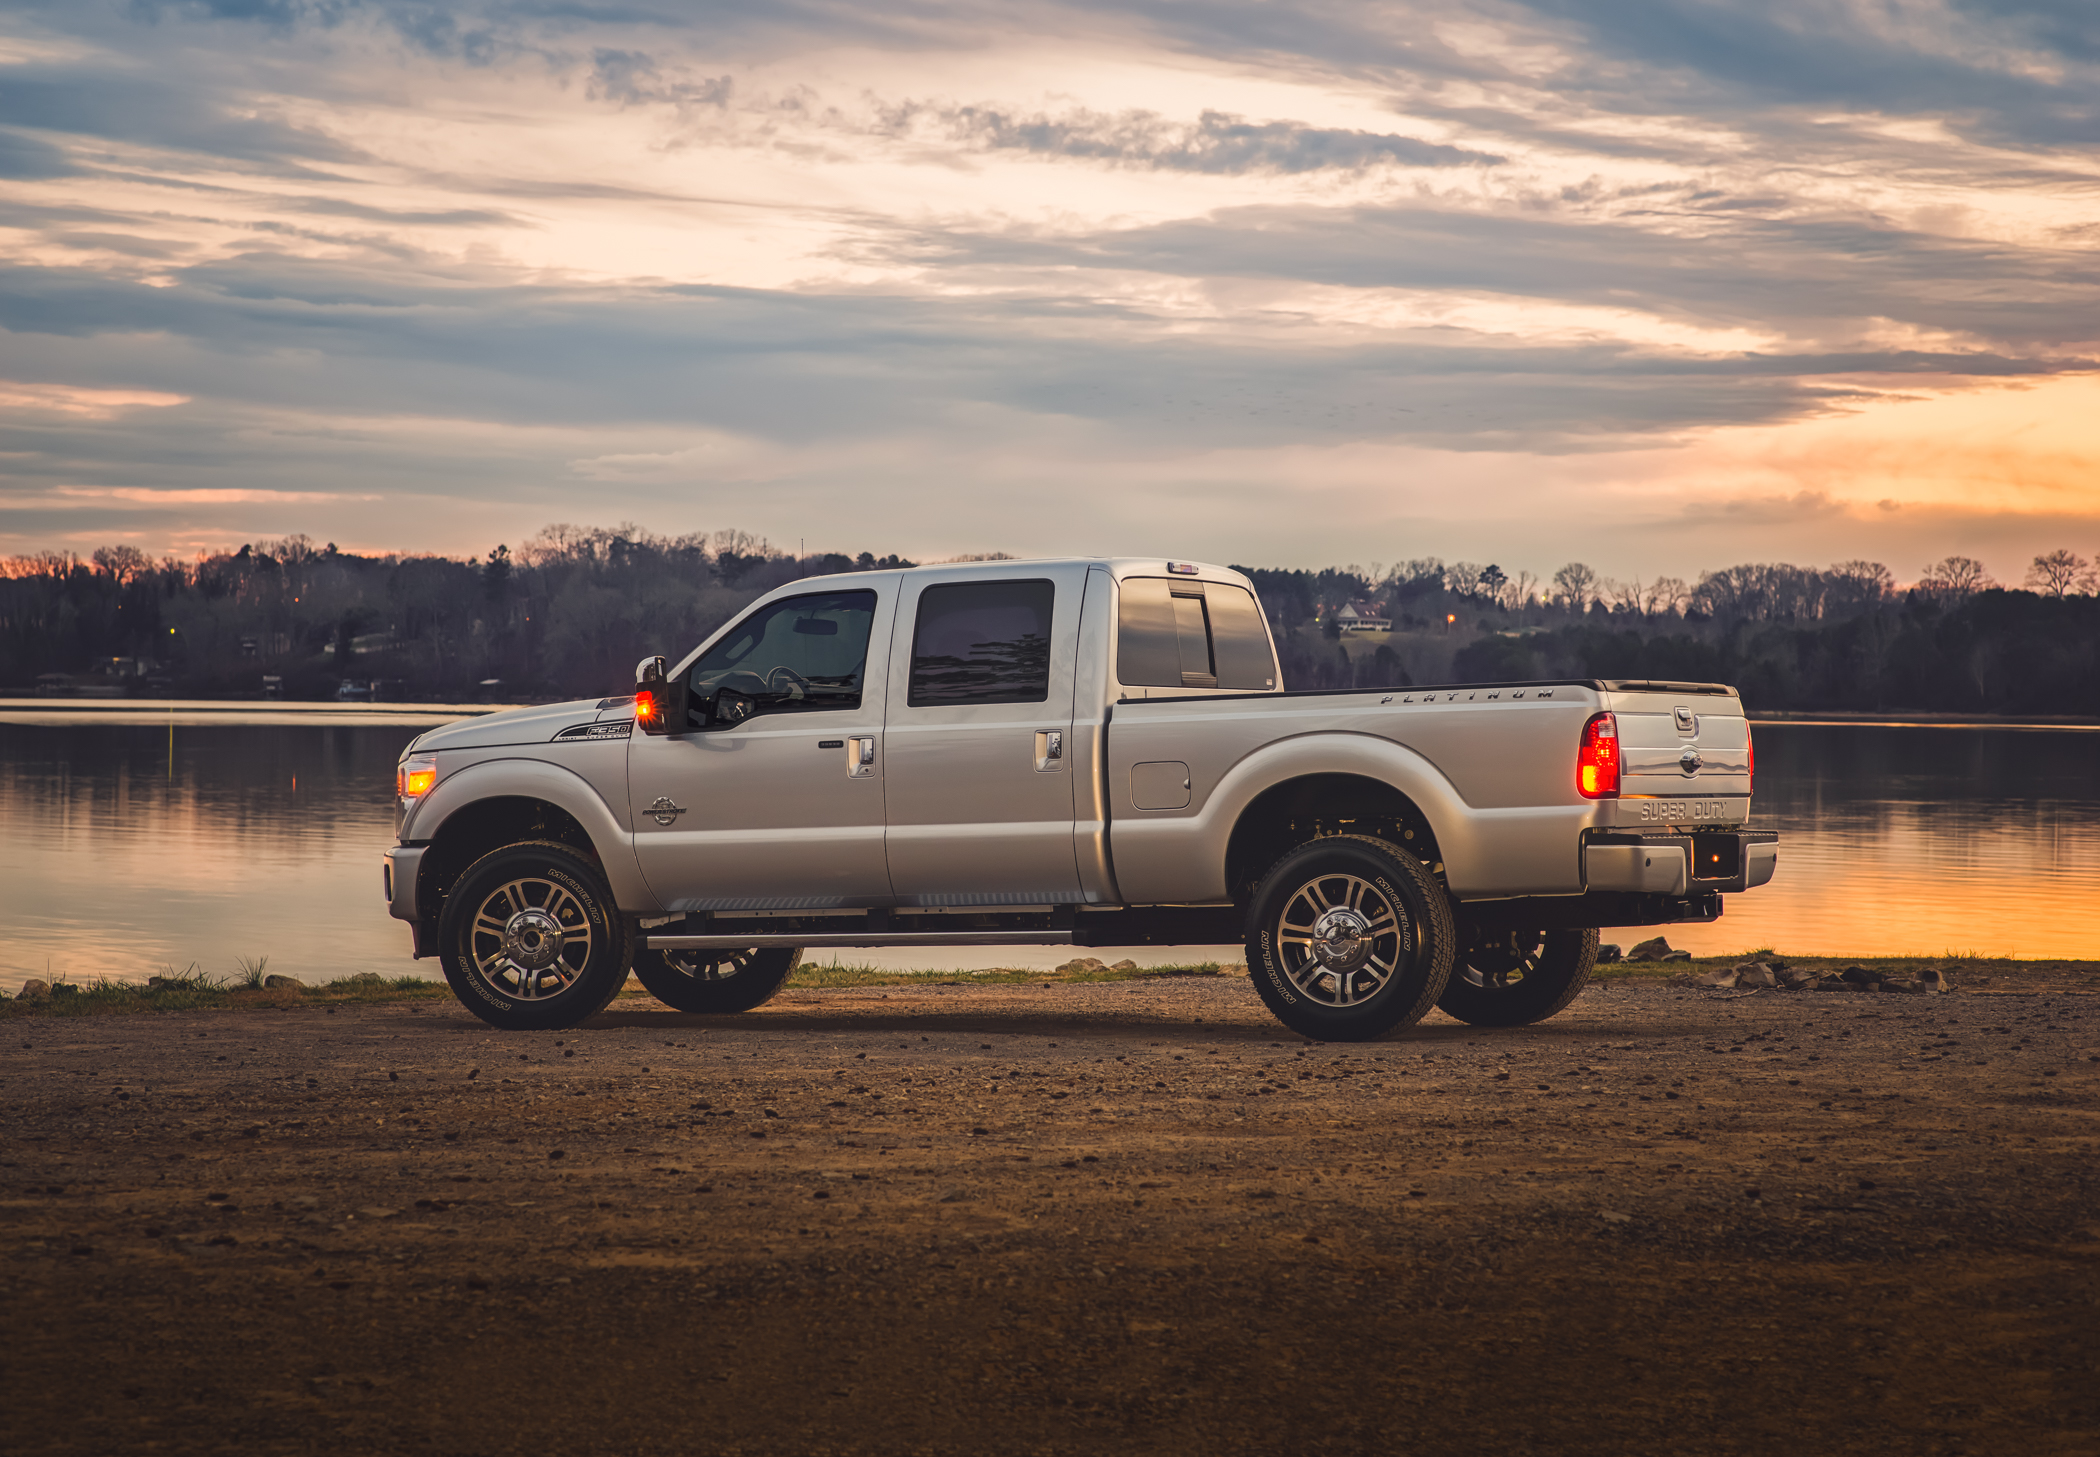 2016 Ford F-350 Platinum 6.7L Power Stroke Turbo Diesel in Ingot Silver Metallic